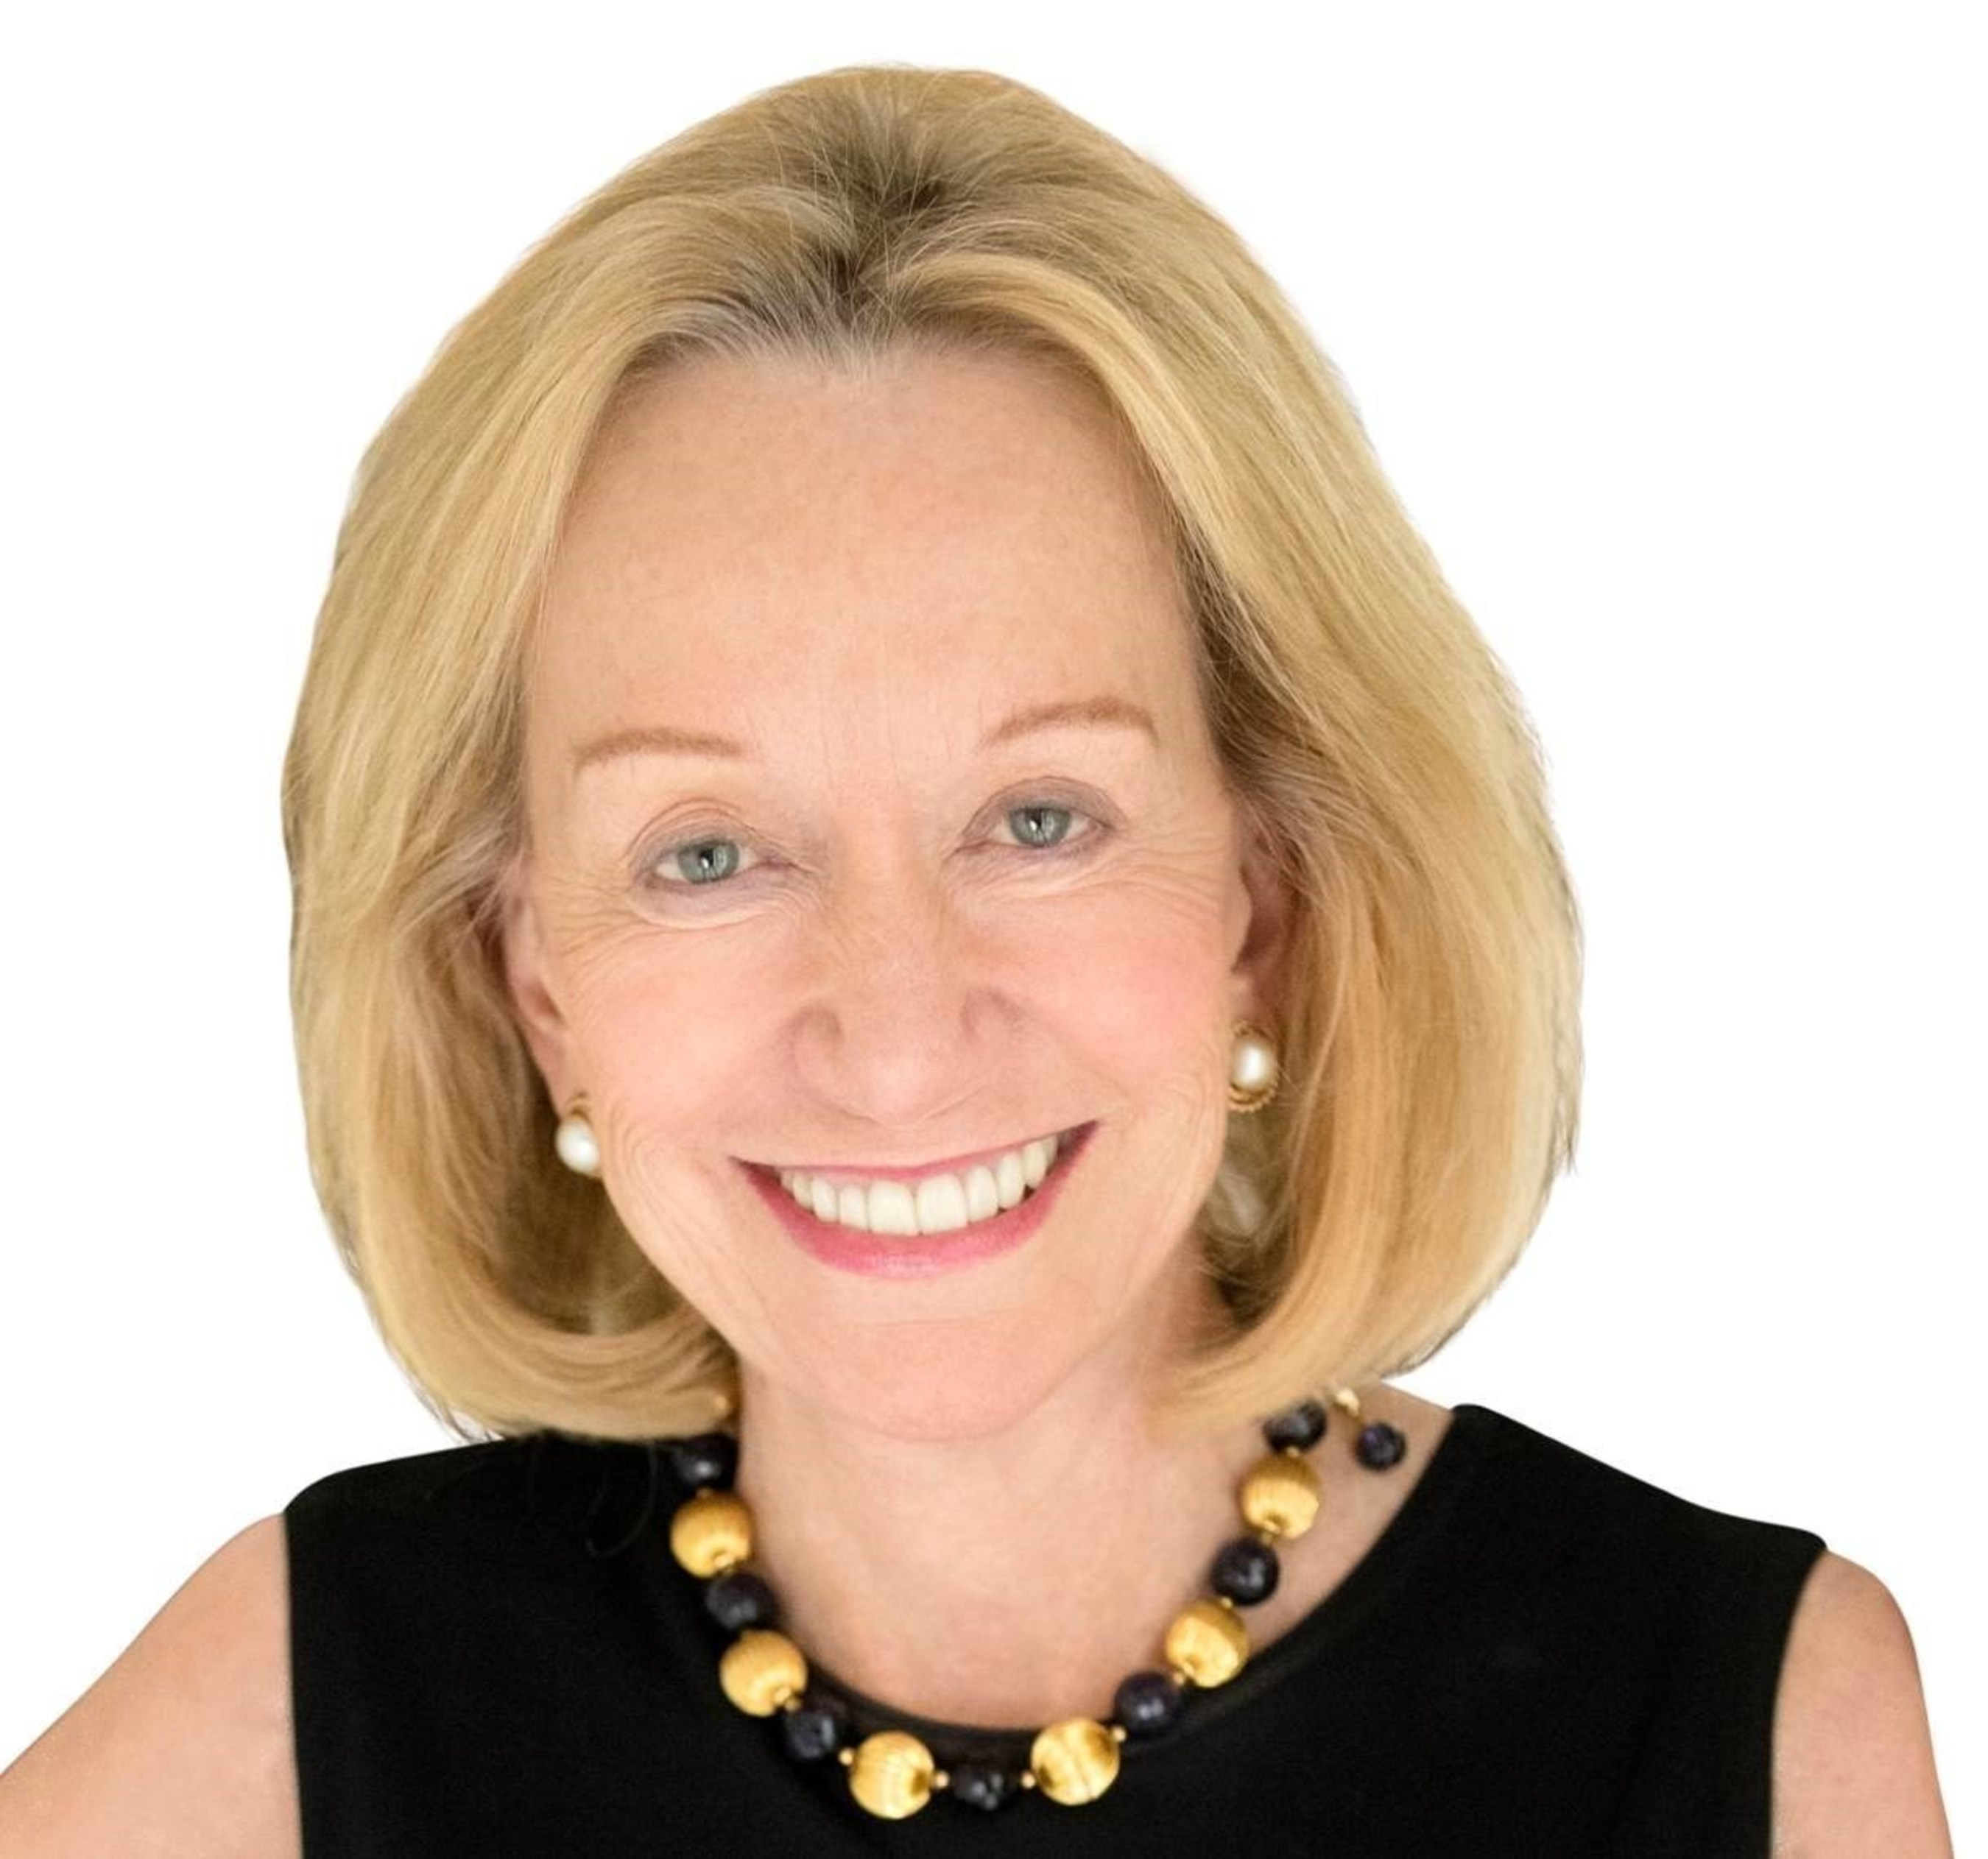 The Abraham Lincoln Presidential Library Foundation Announces Doris Kearns Goodwin, Ph.D. Will Receive the 2016 Lincoln Leadership Prize